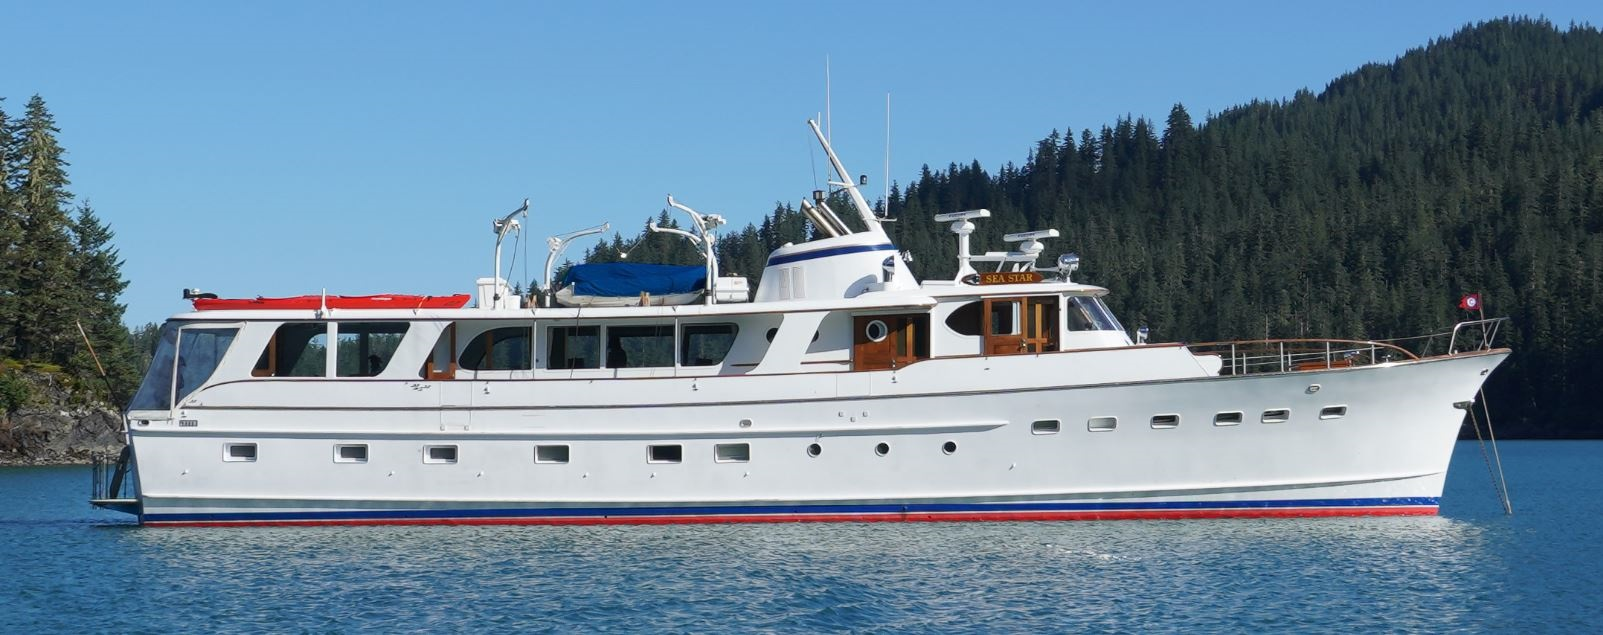 The Luxury Yacht Sea Star - Small Ship Cruise | North